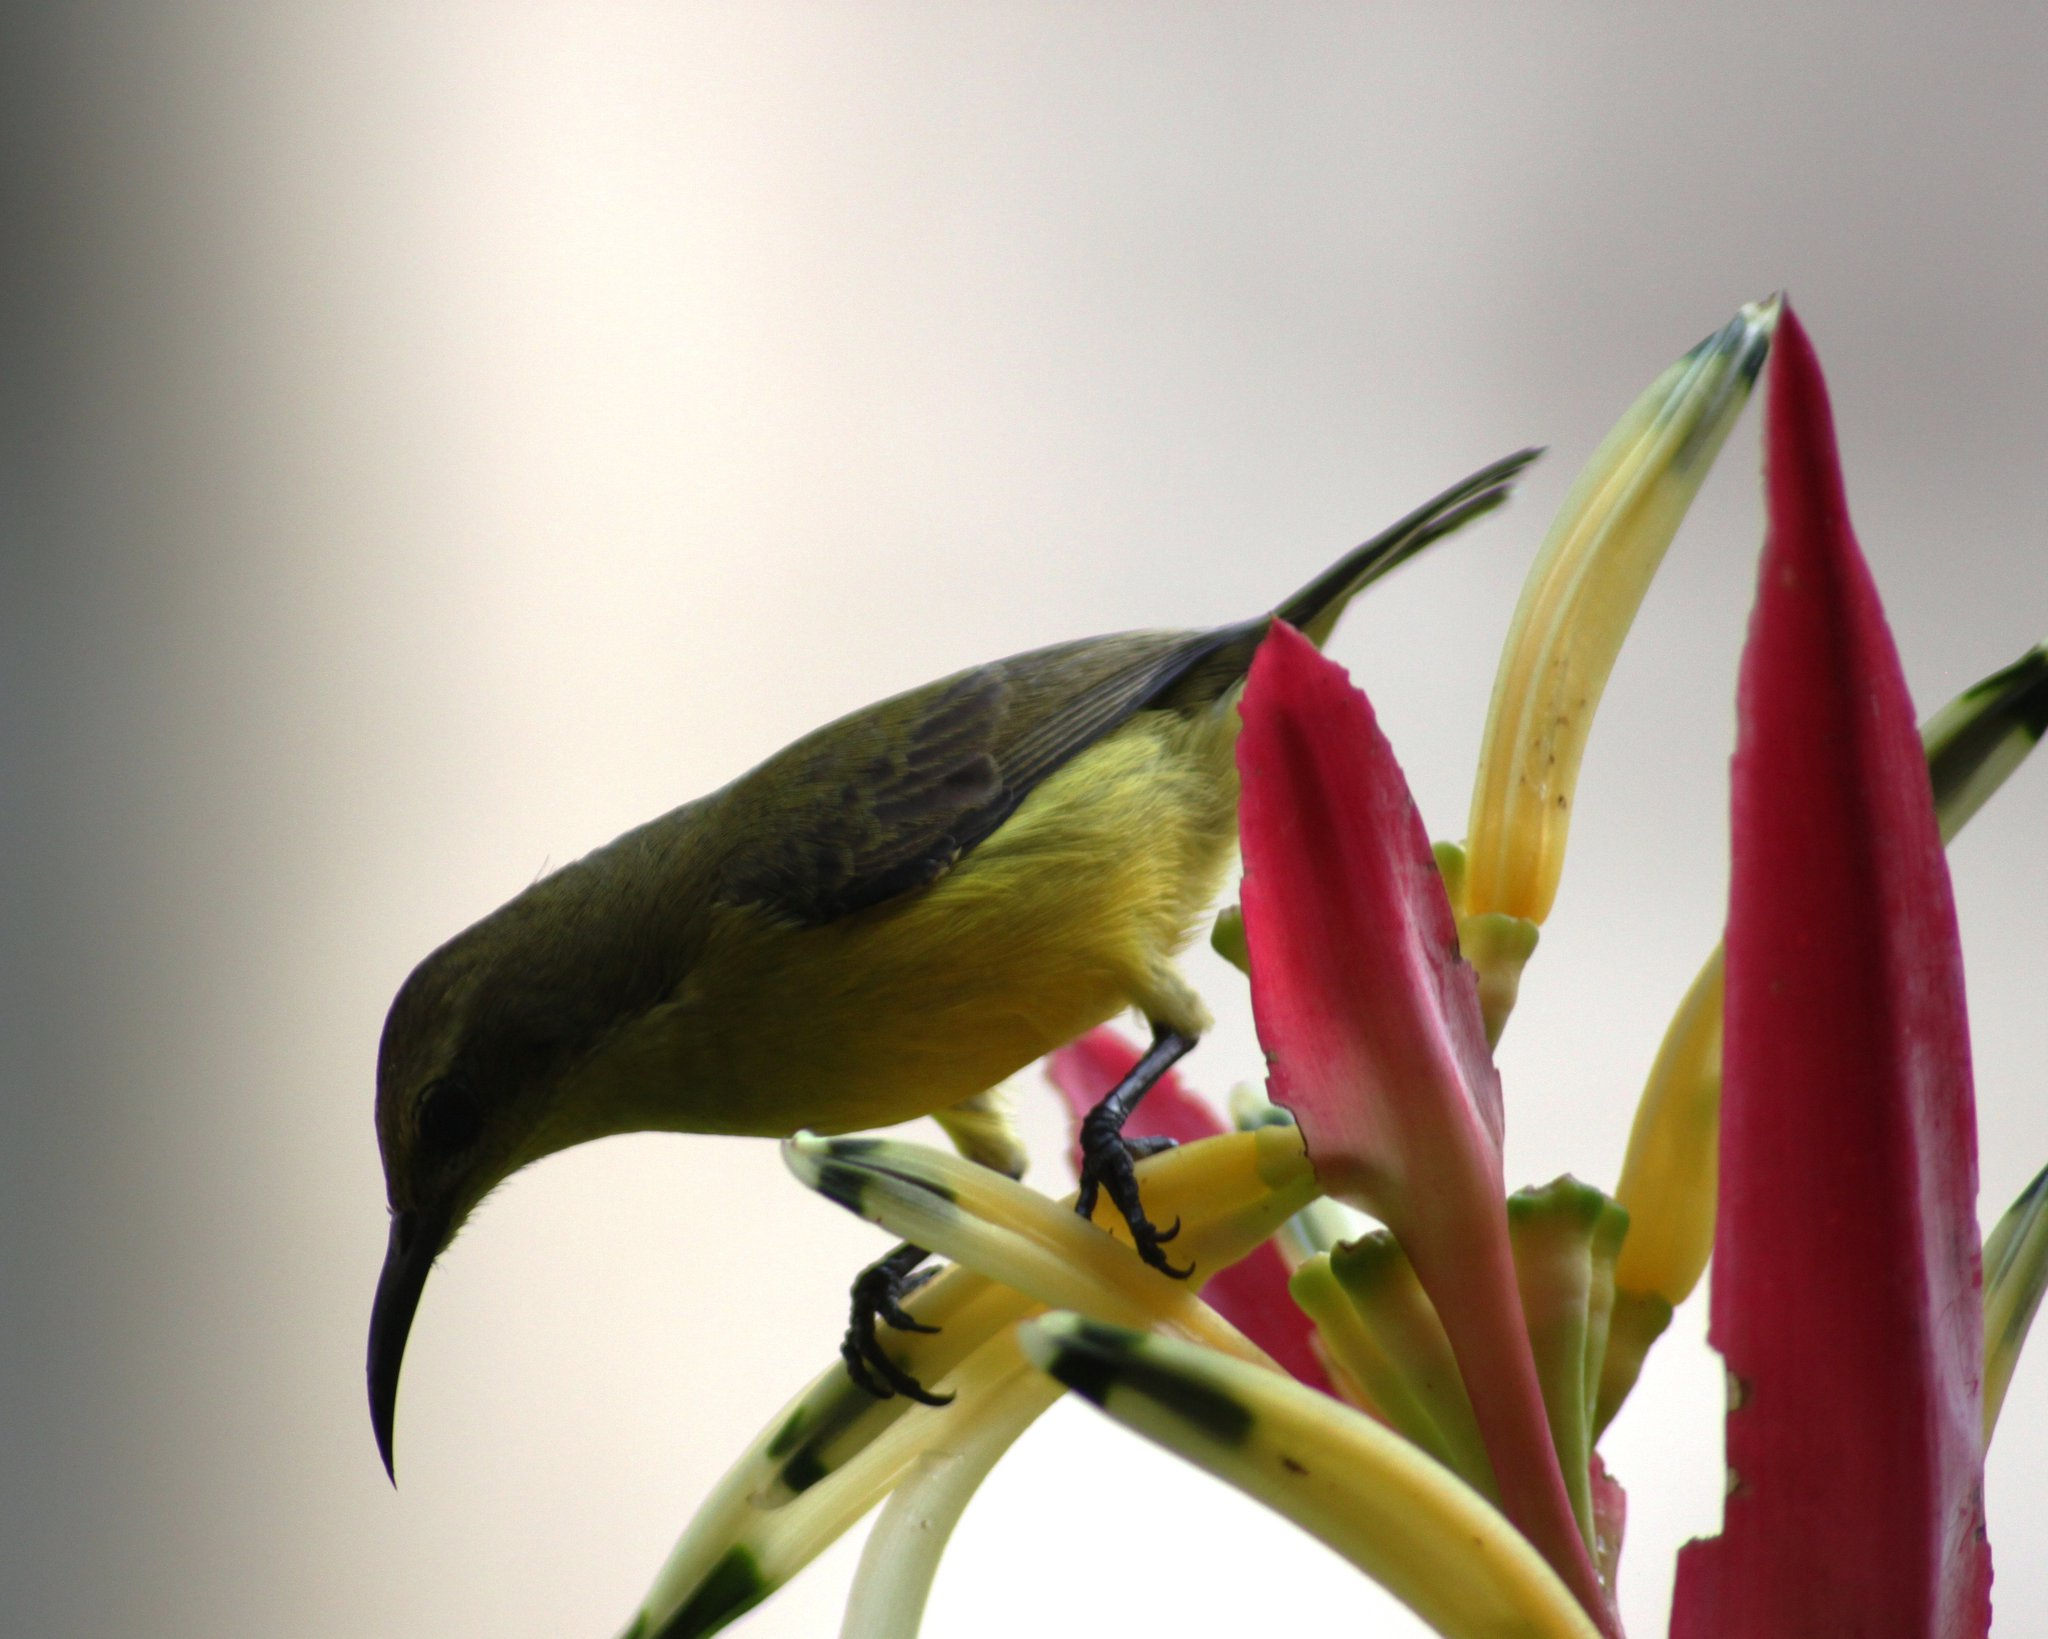 Female Olive-backed Sunbird feeding on heliconia flowers. Photo by Angie Tan-Carlsen.